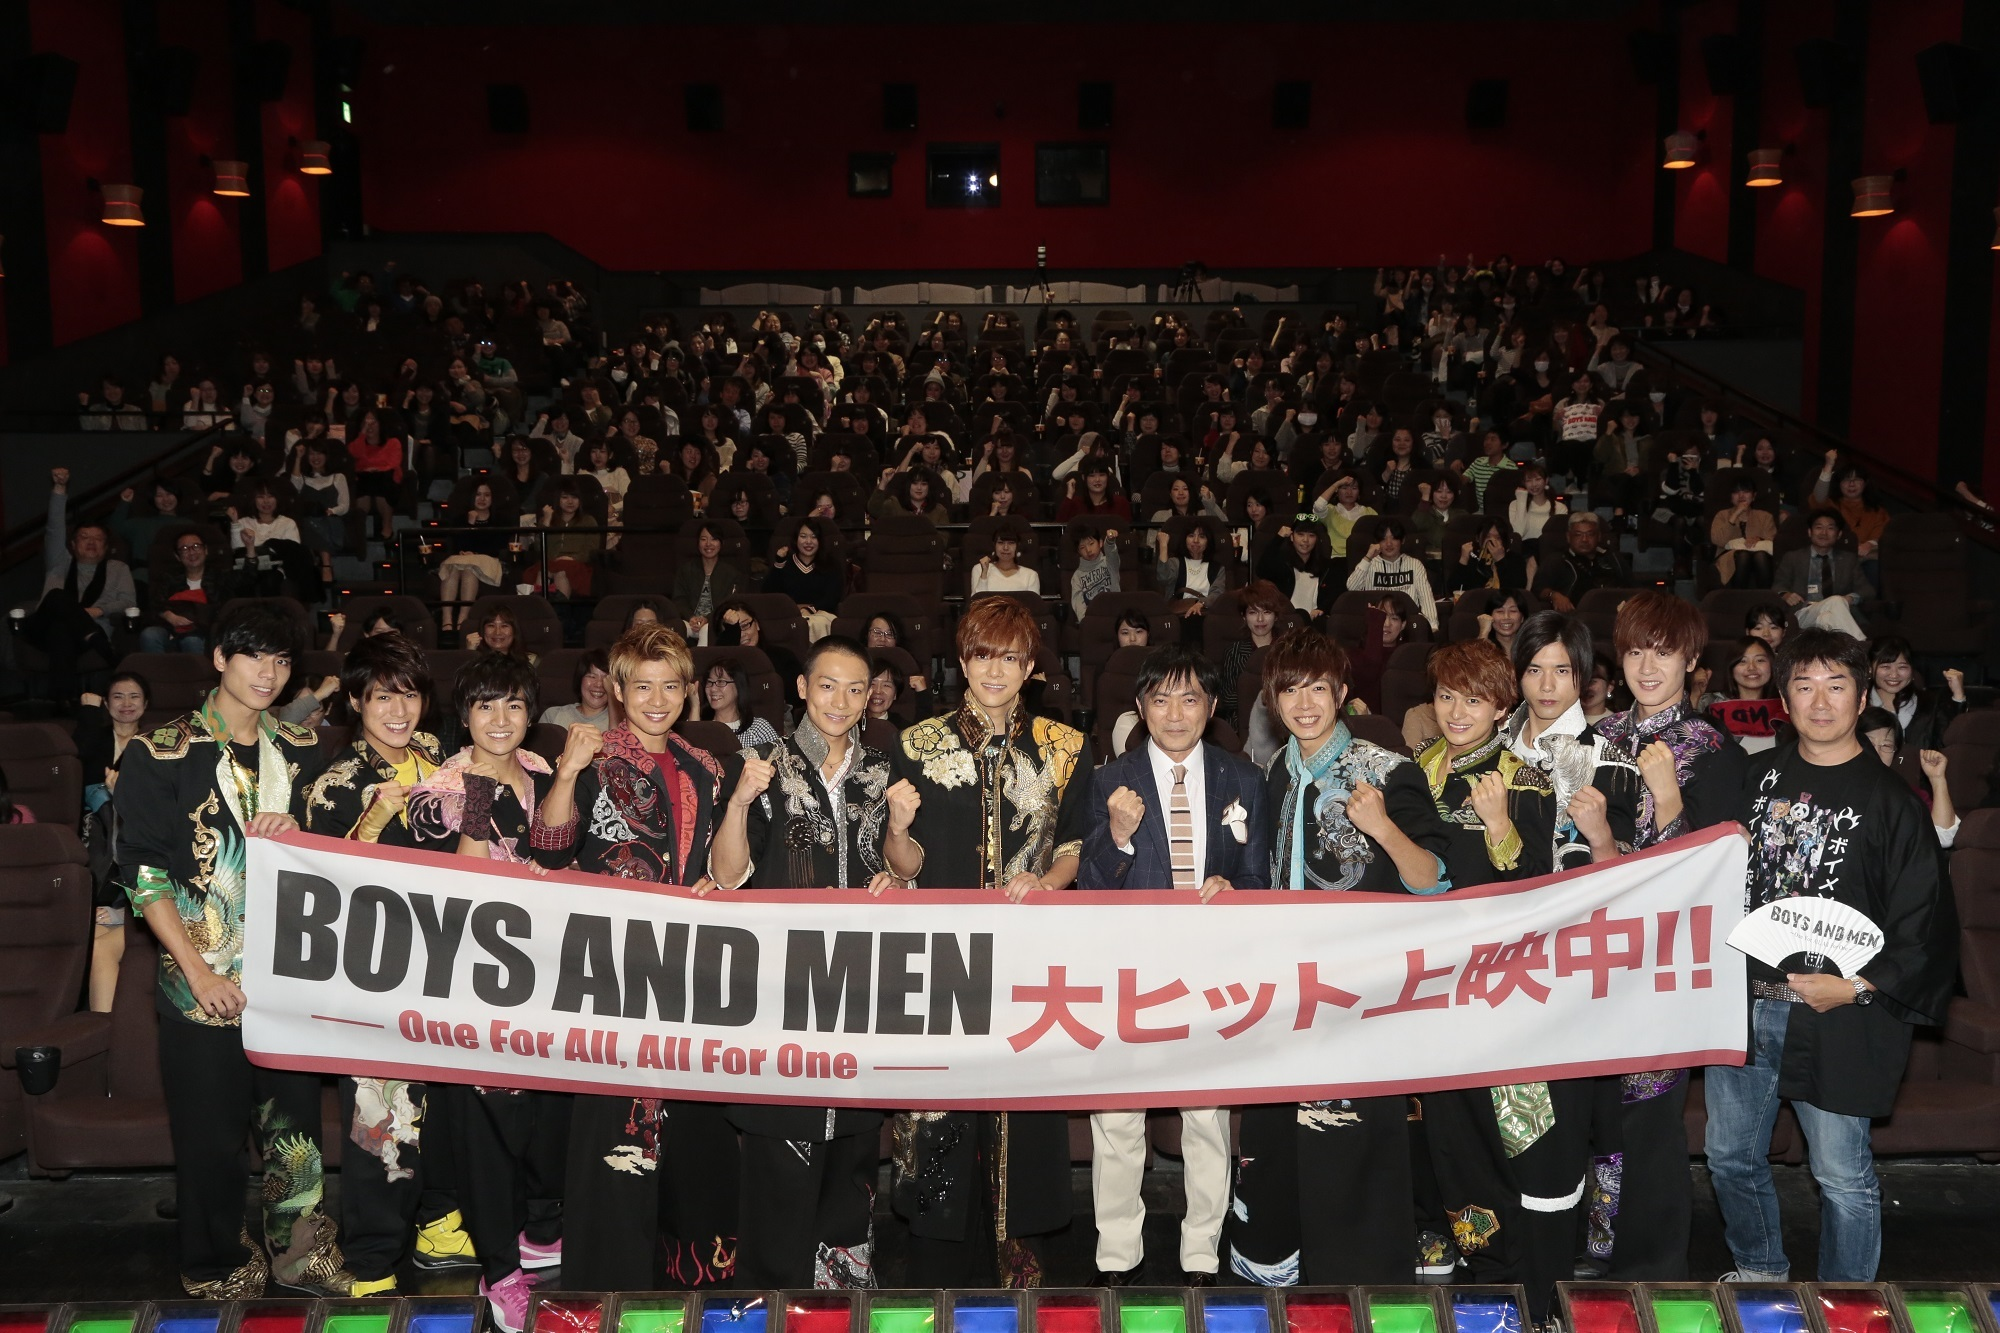 映画『BOYS AND MEN ~One For All, All For One~』 初日舞台あいさつ